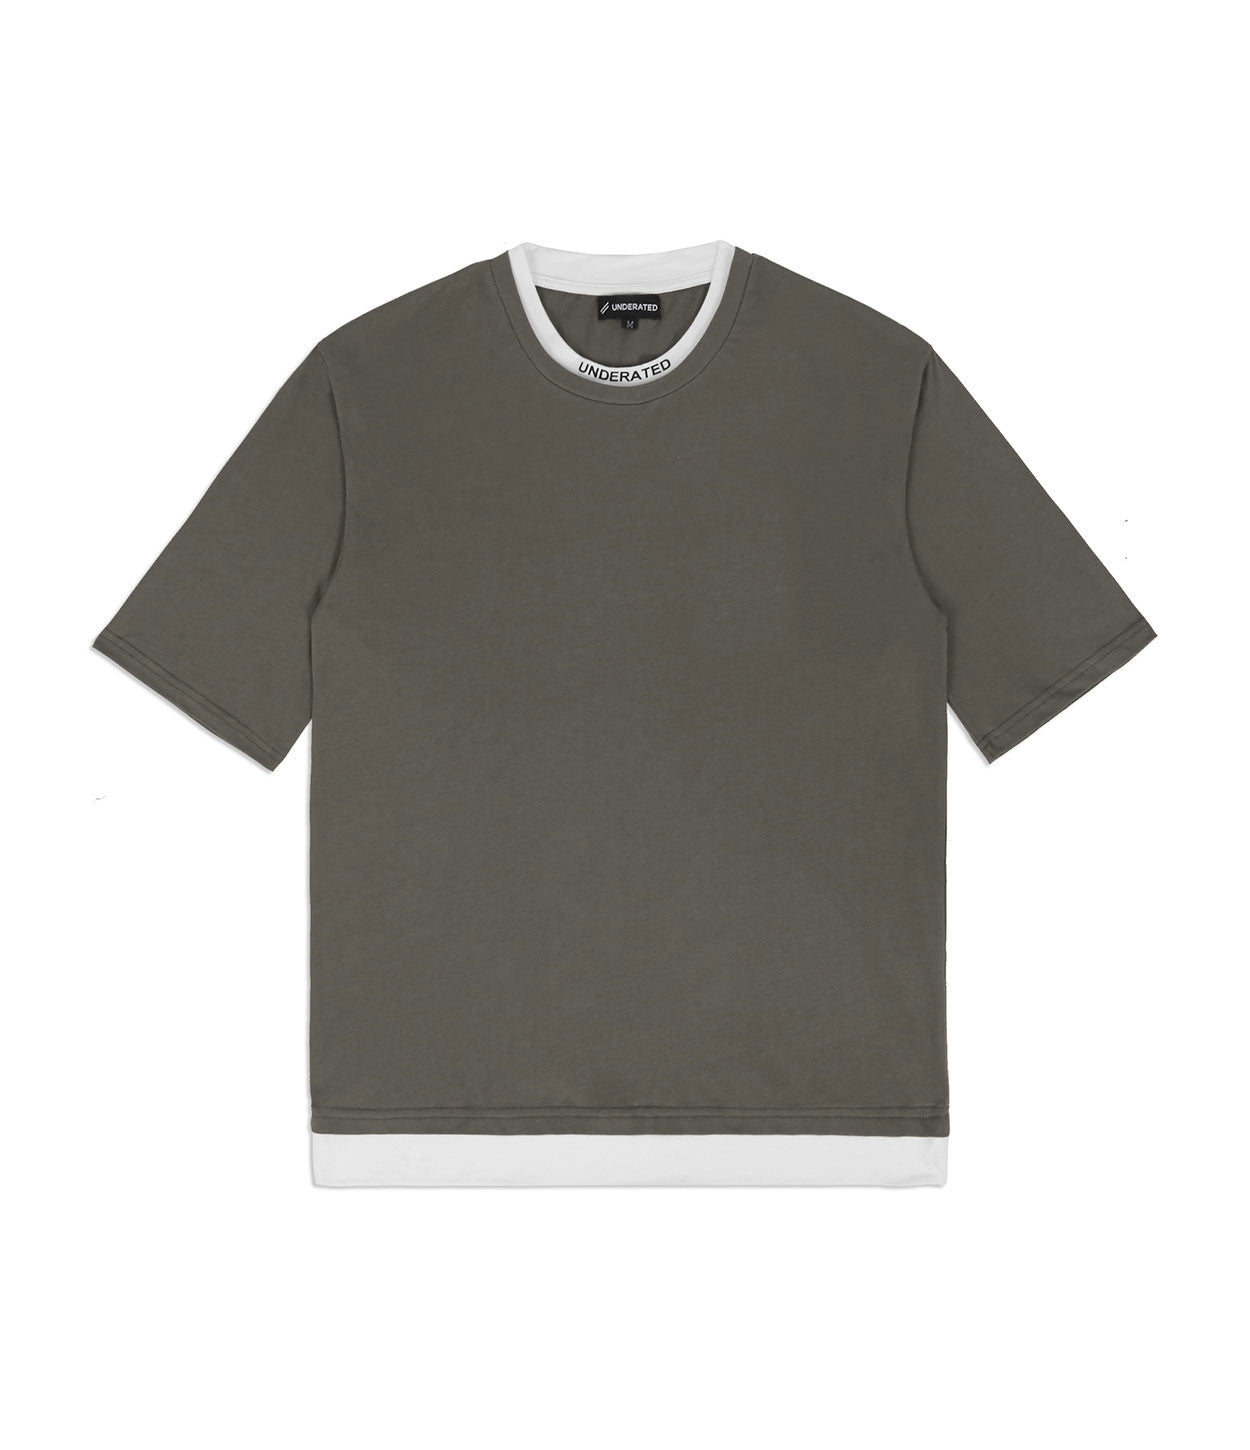 TS380 Collar Print Tee - Khaki - underated london - underatedco - 1